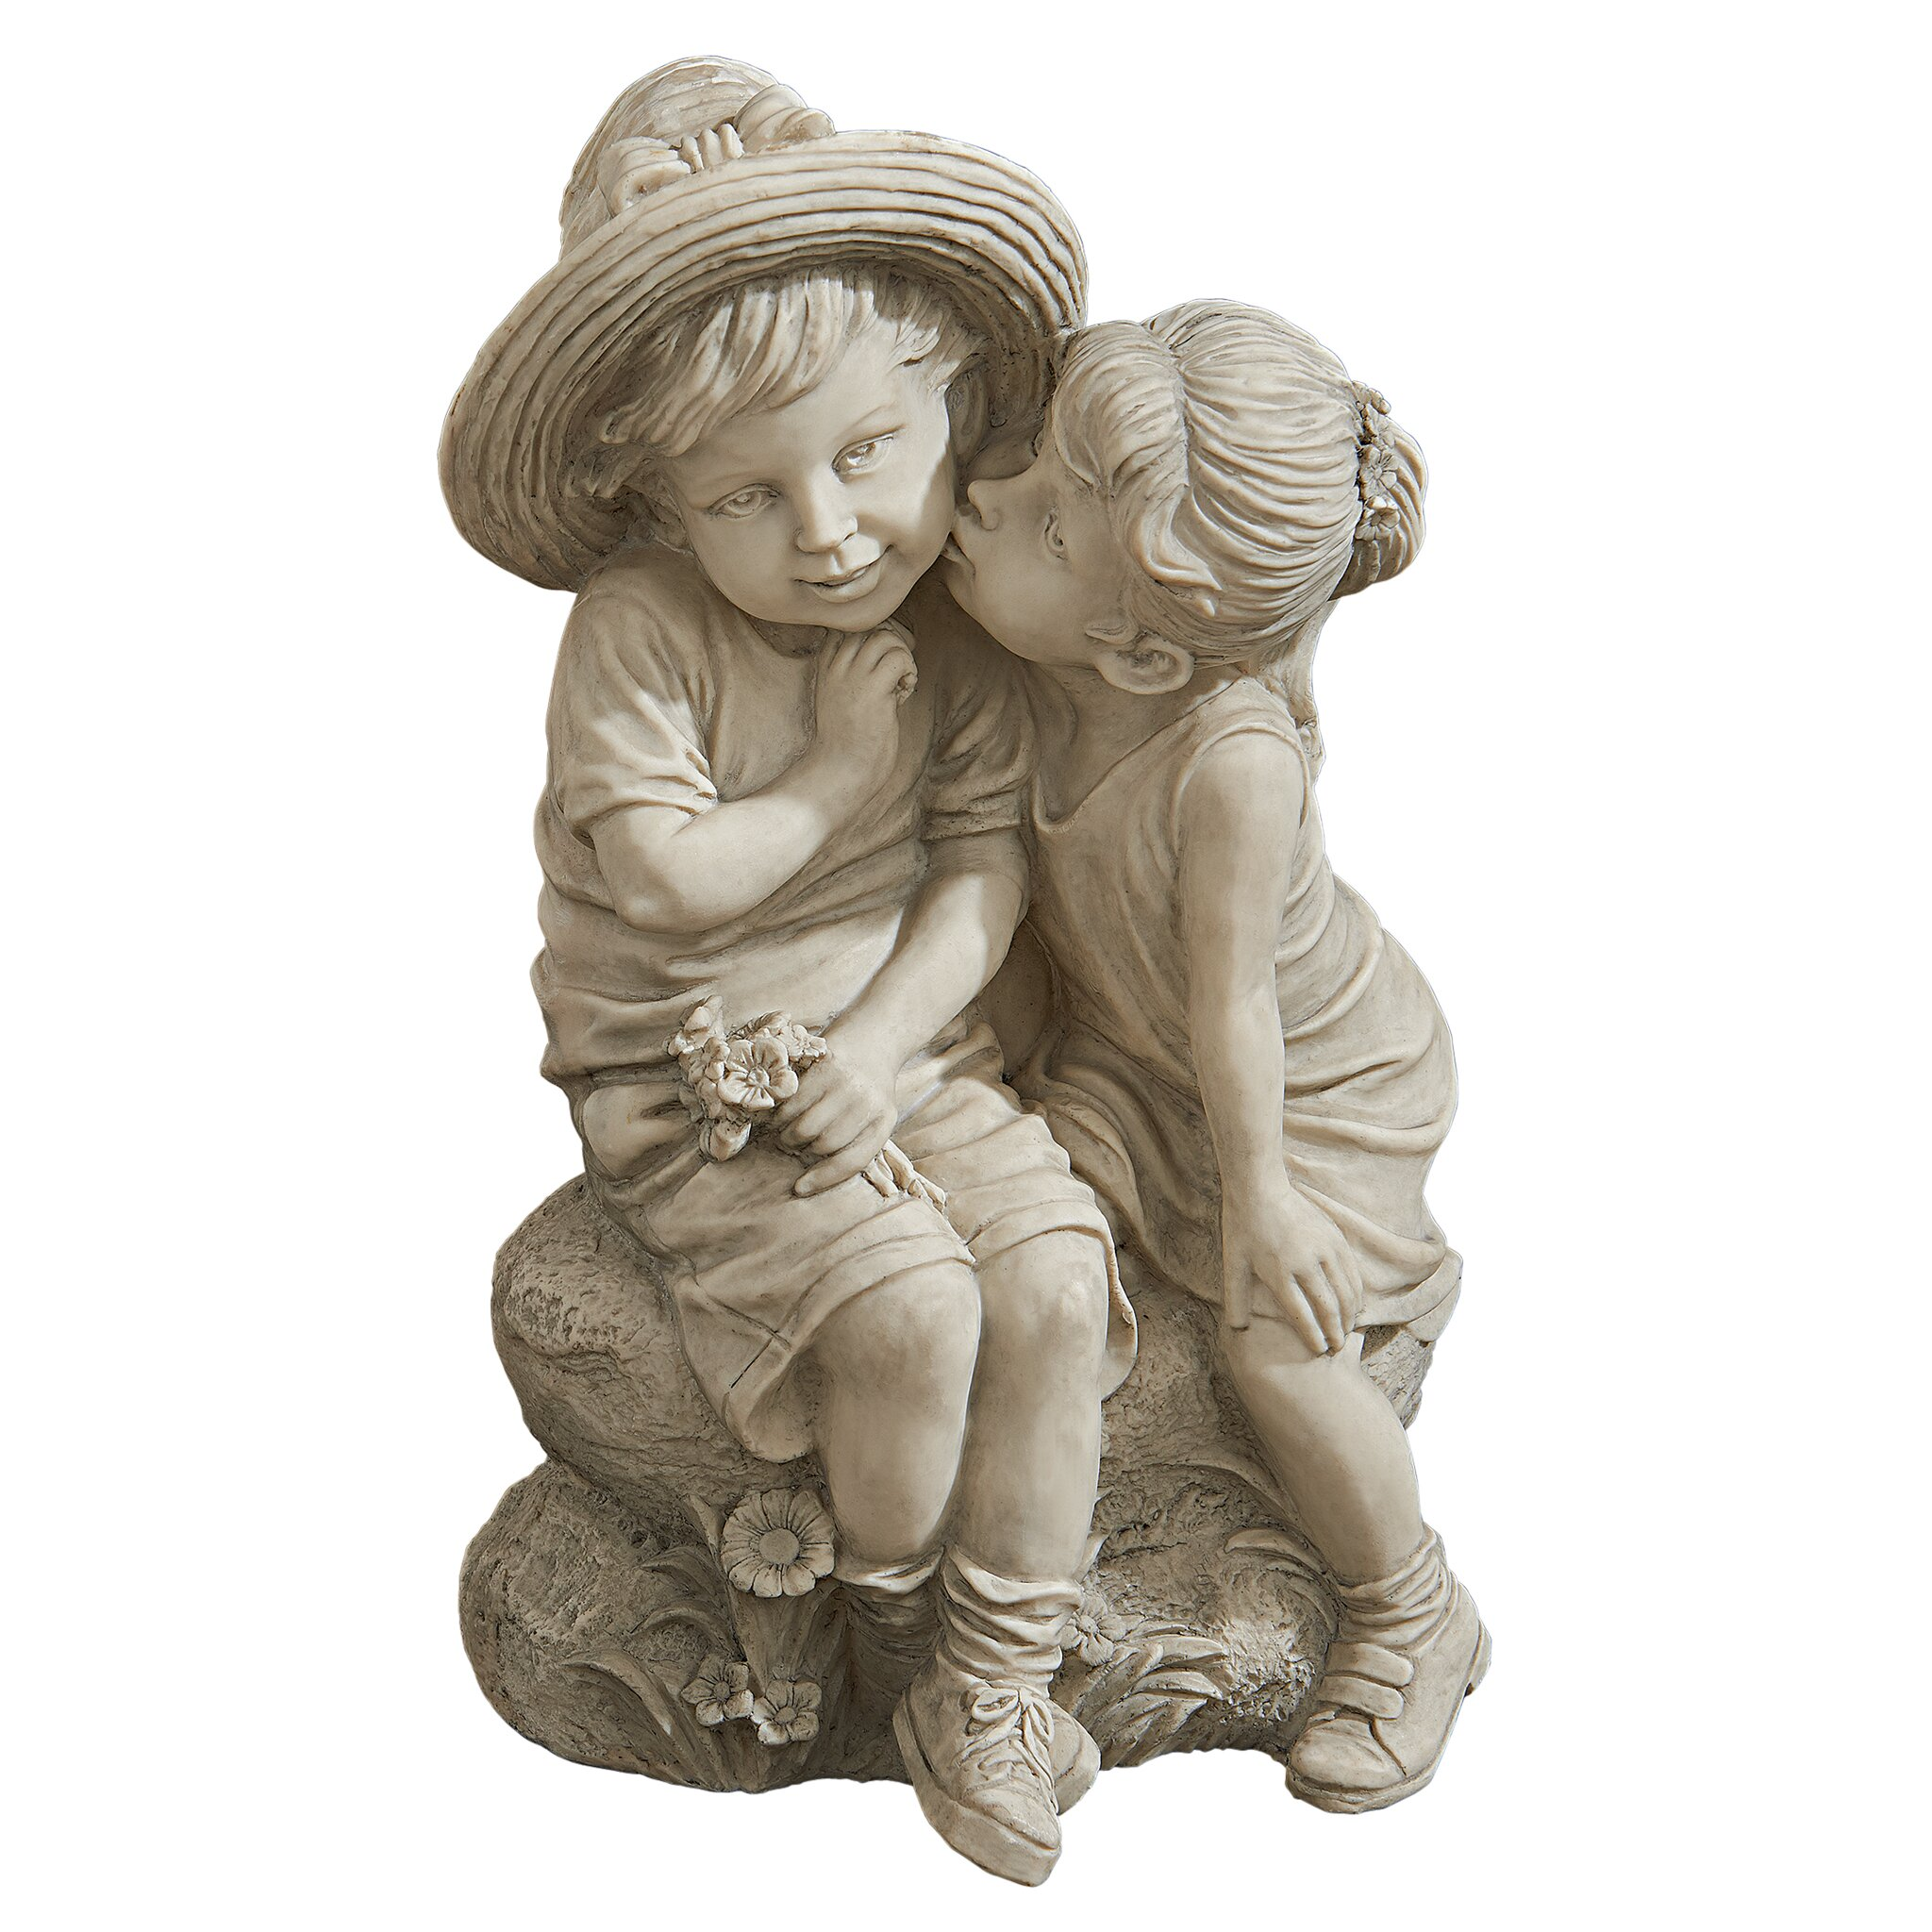 Design Toscano Kissing Kids Boy and Girl Statue amp Reviews  : Design Toscano Kissing Kids Boy and Girl Statue SH38019413 from www.wayfair.com size 2048 x 2048 jpeg 683kB